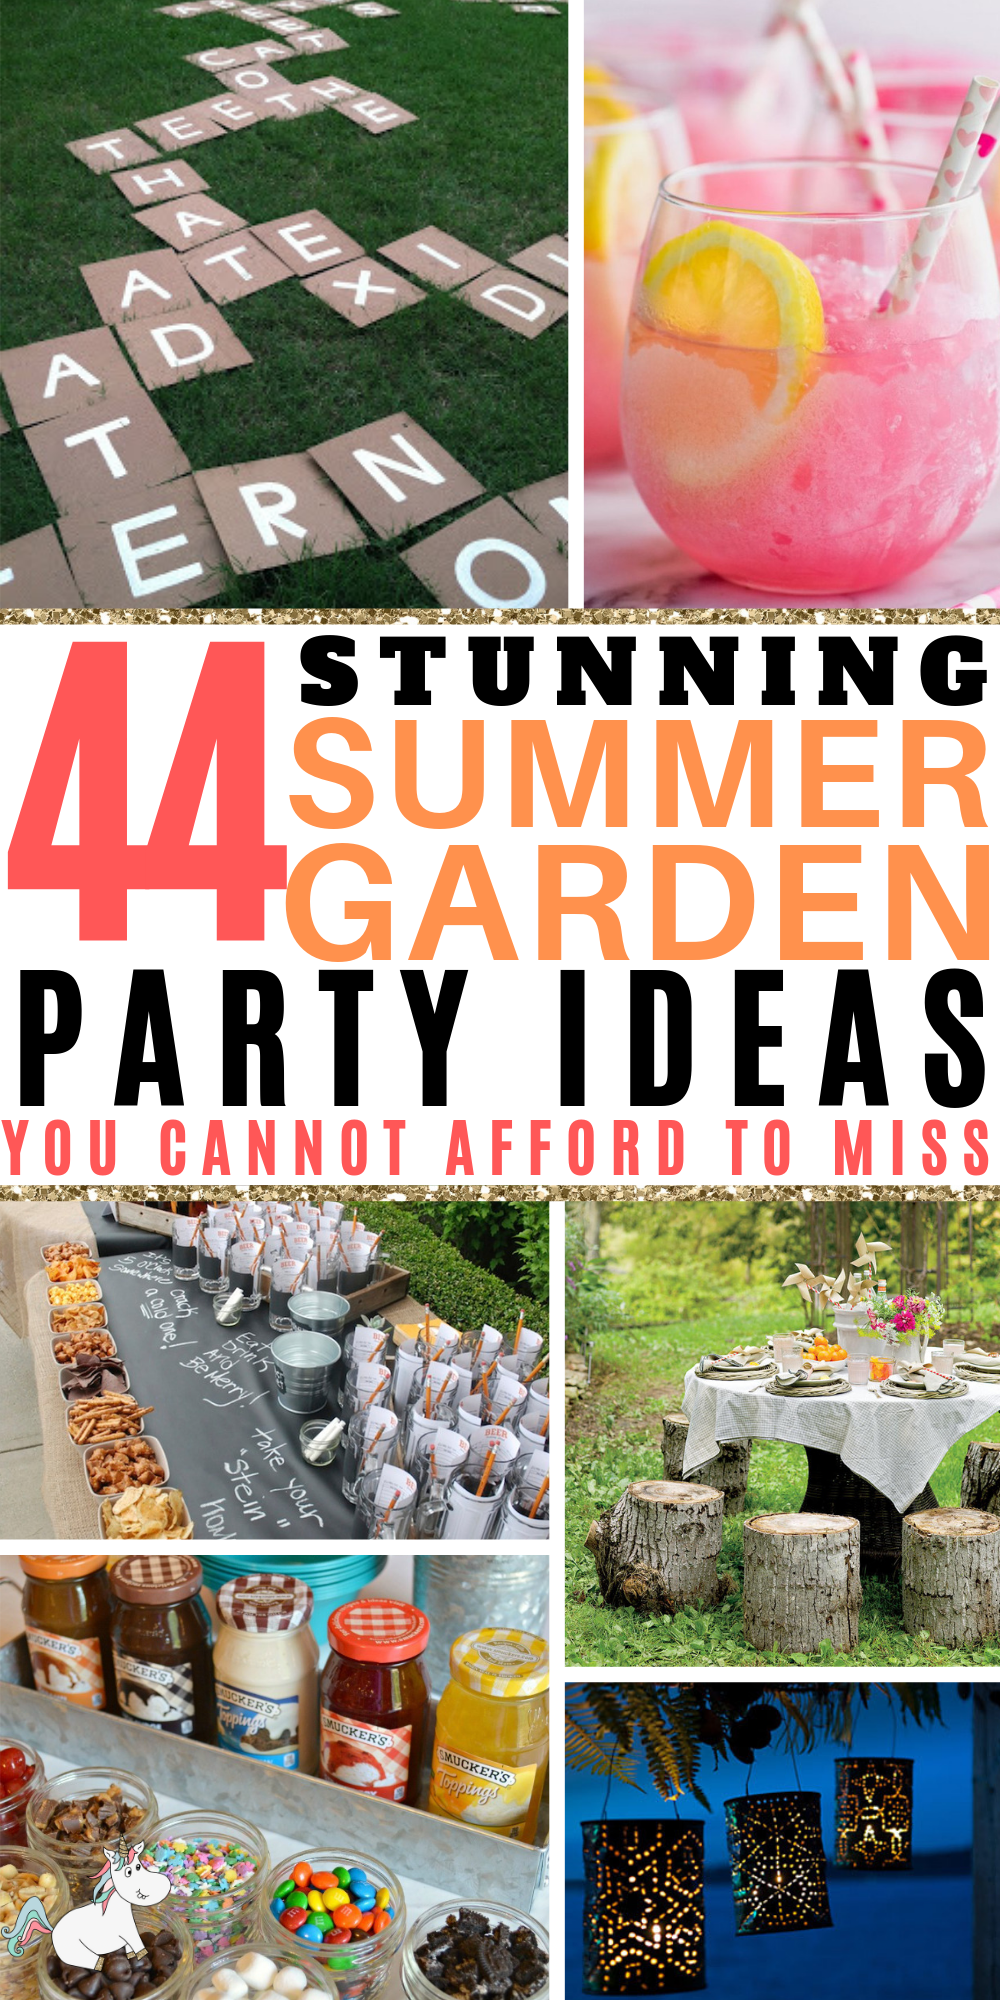 44 Stunning Summer Garden party Ideas You Cannot Afford To Miss! If you're party planning this summer then you're going to love these brilliant DIY summer party ideas that include party recipes, diy party decor, party games, cocktails, party themes & more! Click to check them out #summerpartyideas #summerparty #outdoorparty #party #partyideas #bbqpartyideas #themummyfront